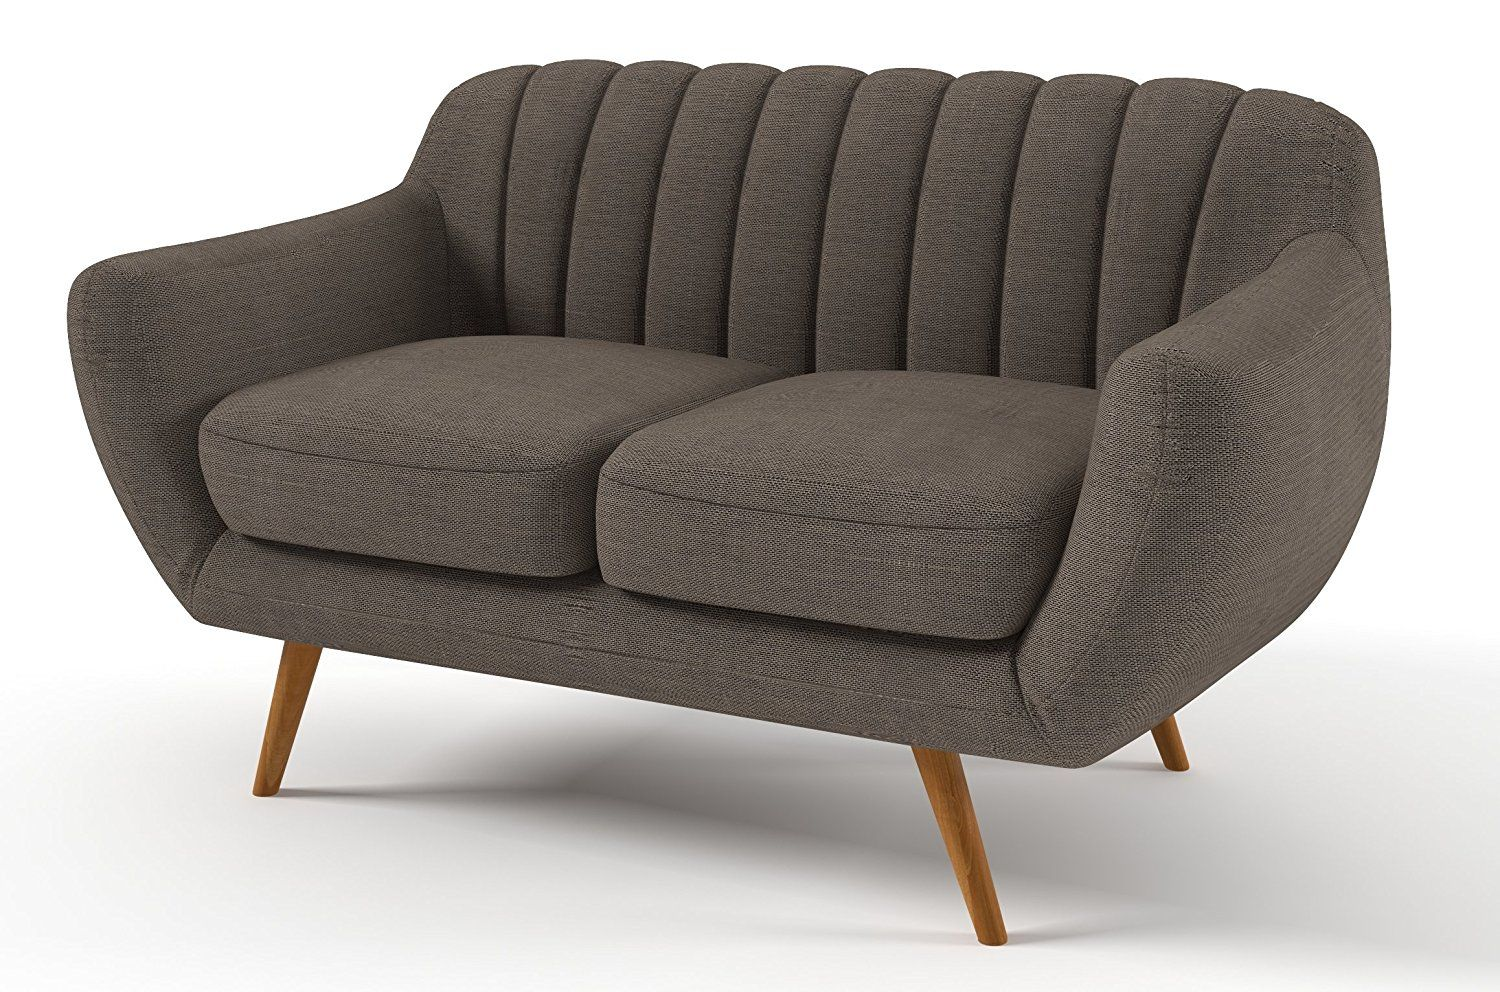 Sofabella Vogue 2 Seater Sofa With Cotton Drill Style Fabric 142 X 86 X 84 Cm Natural 2 Seater Sofa Comfy Sofa Sofa